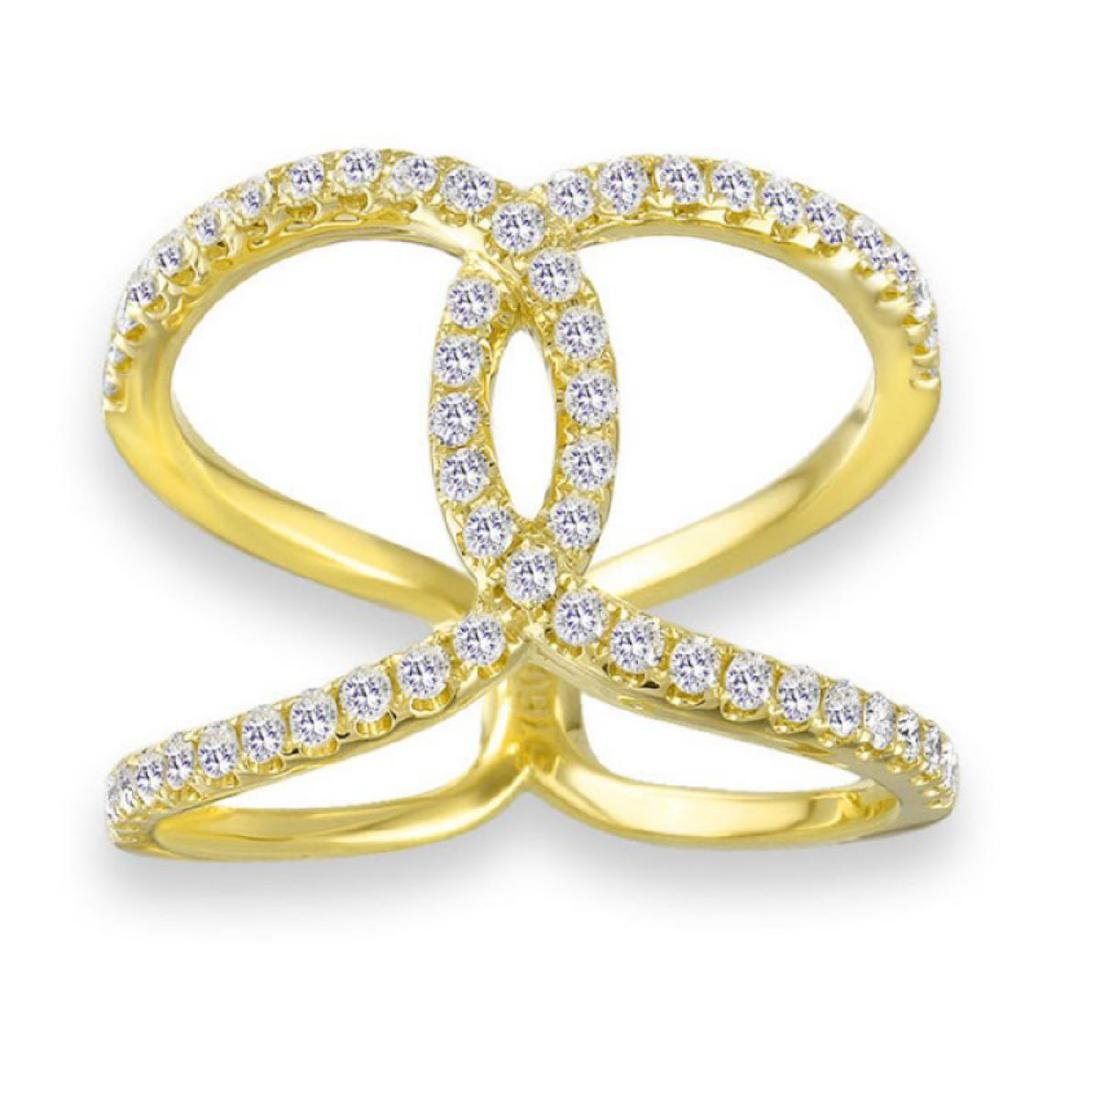 18K DIAMOND BY PASS RING IN YELLOW GOLD